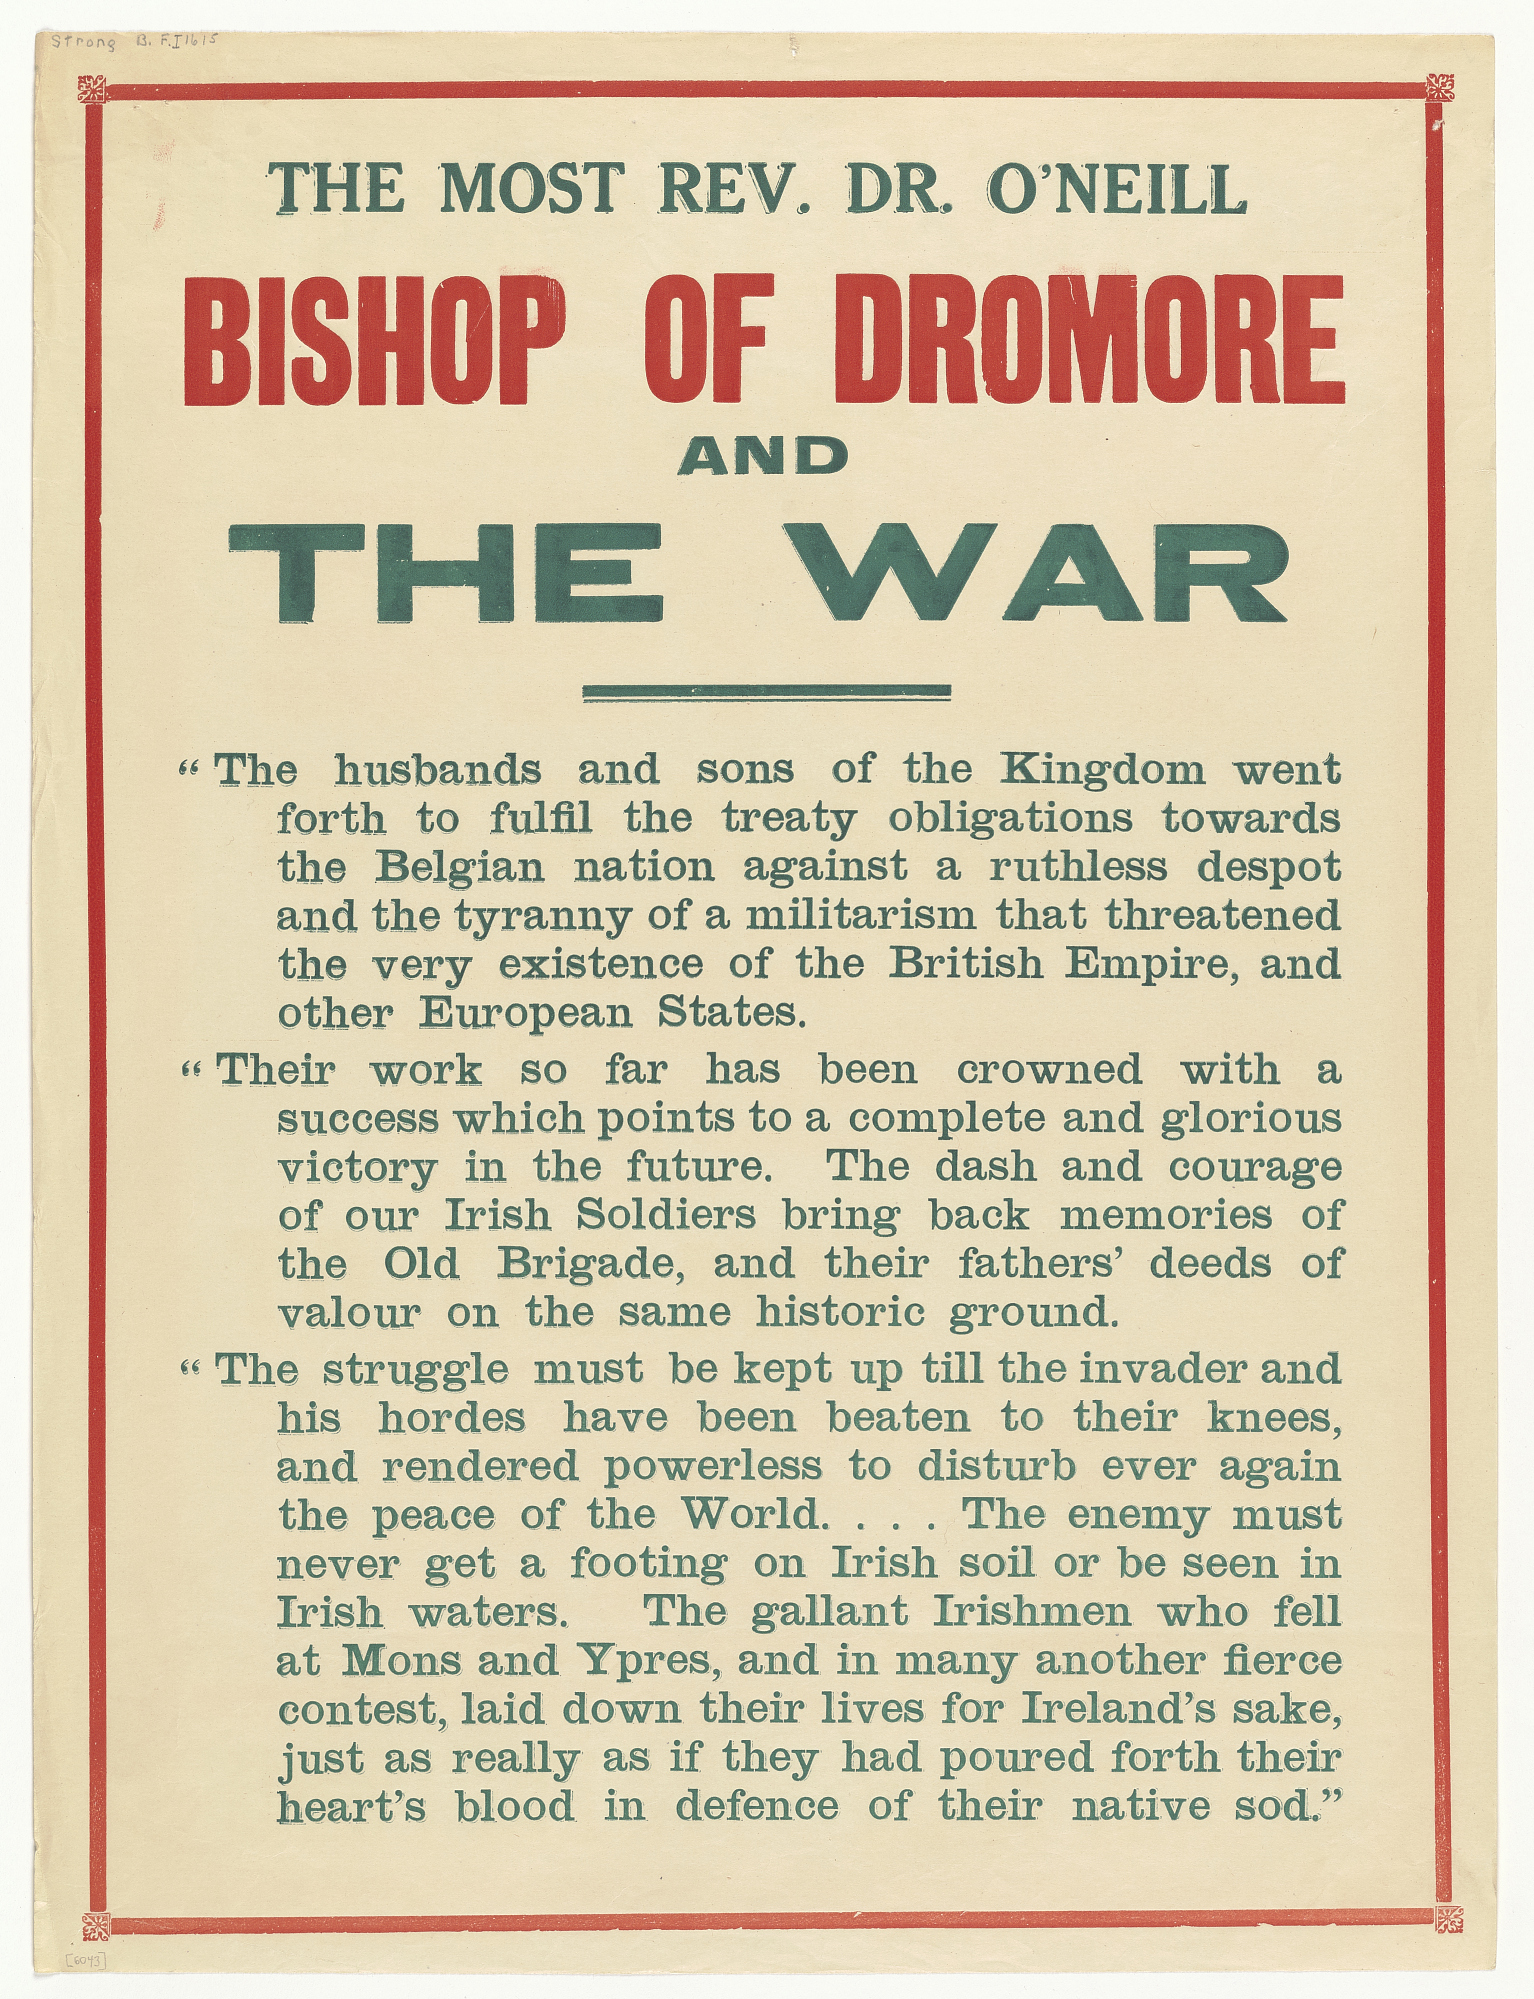 The Most Rev. Dr. O'Neill Bishop of Dromore and the War...